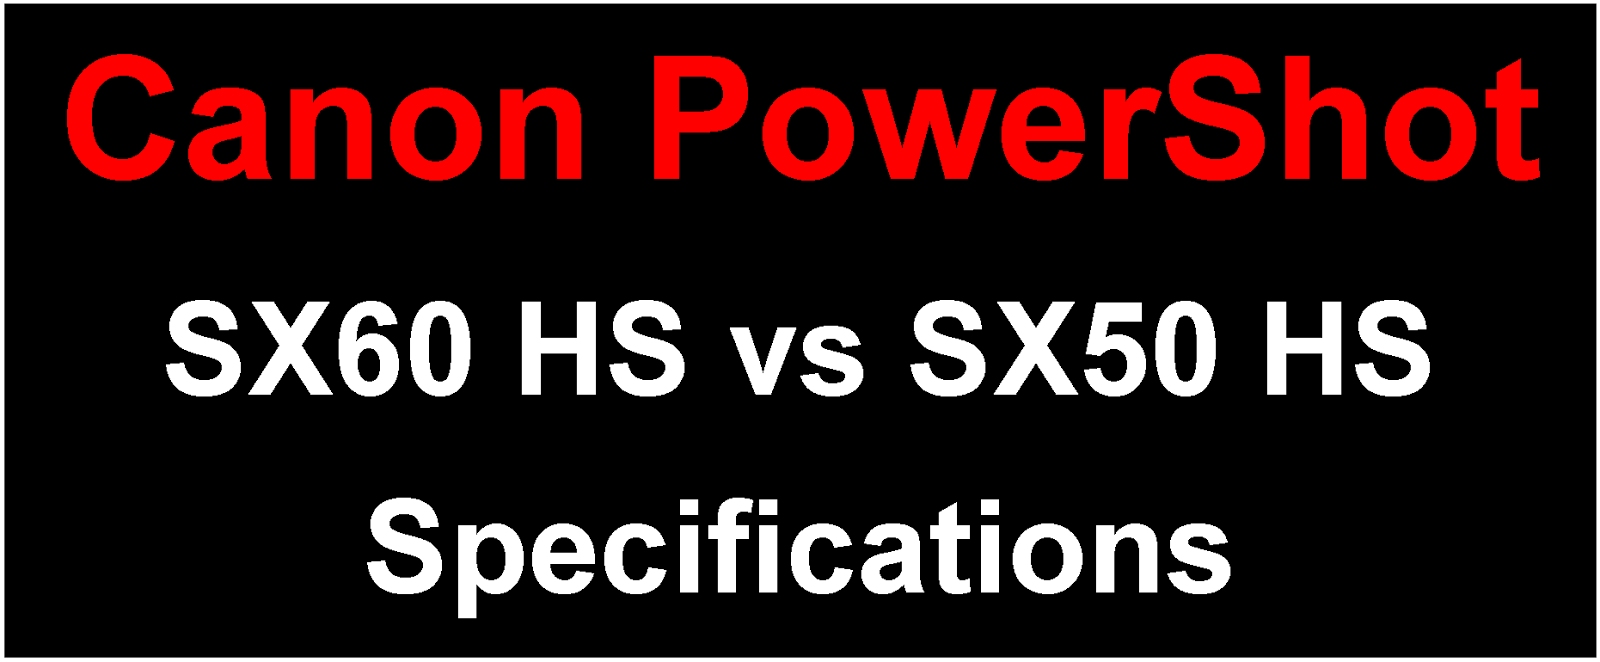 Canon PowerShot SX60 HS vs Canon PowerShot SX50 HS Specification Comparison